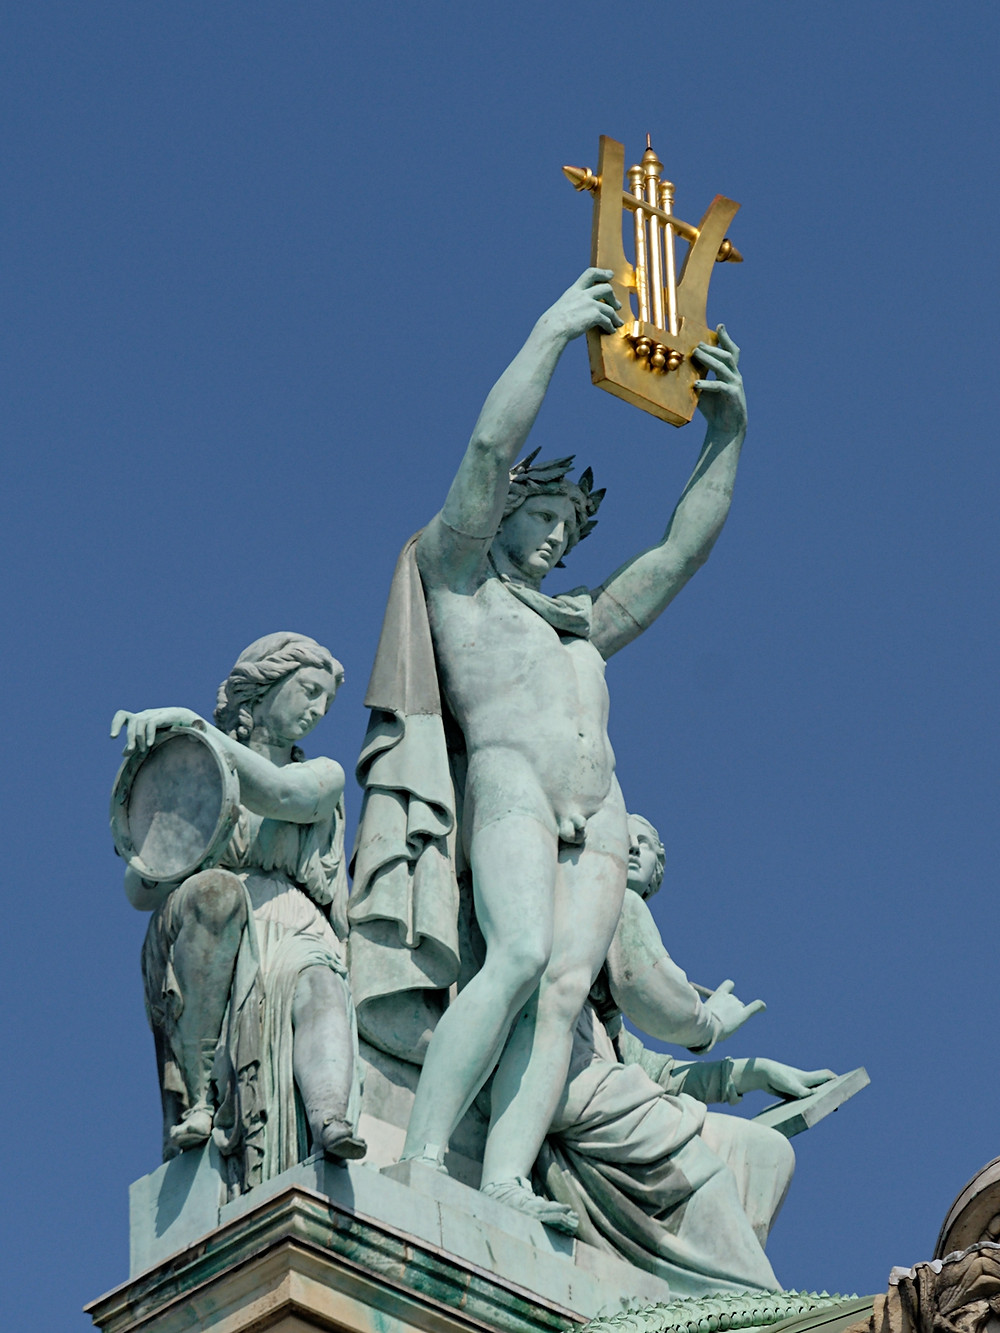 at the very tip top of the Pairs Opera you'll see Apollo holding up a lyre